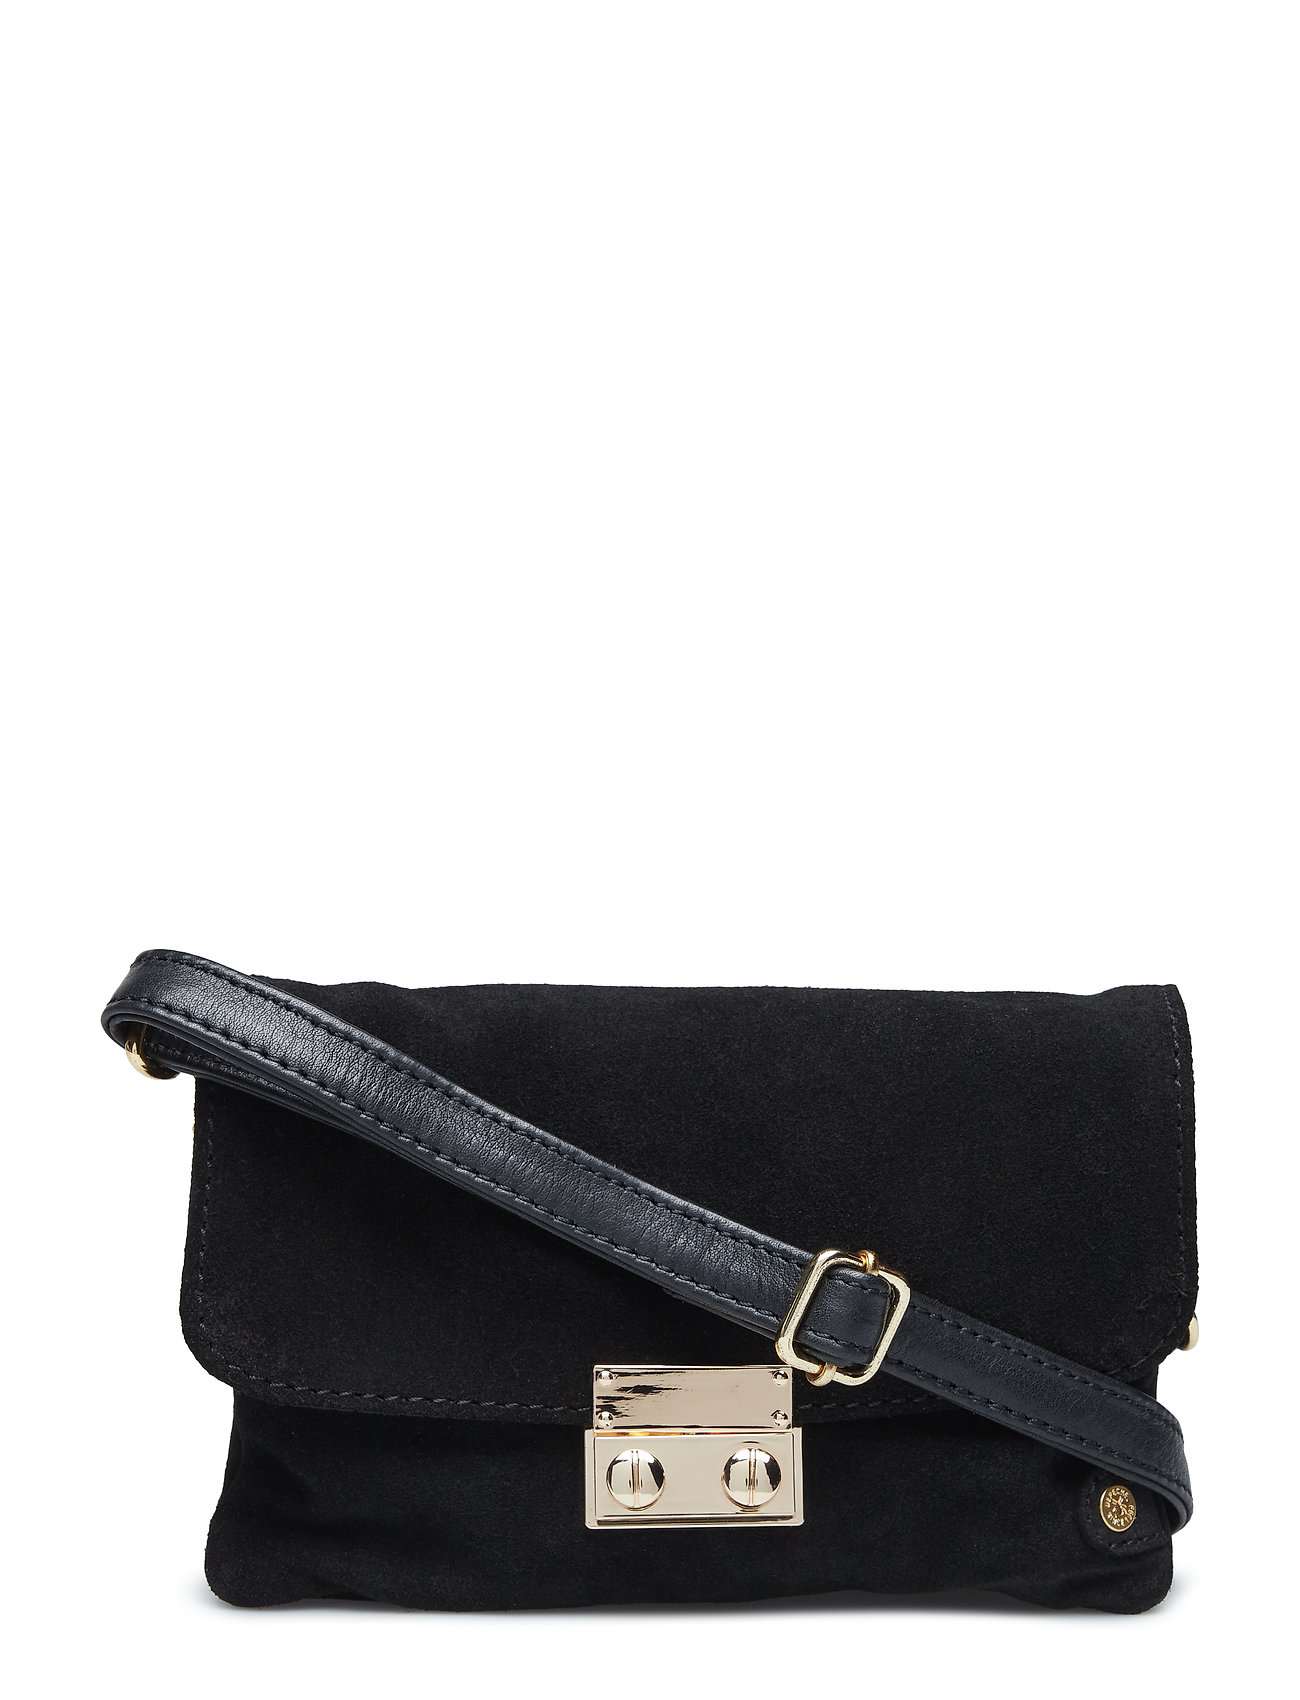 Image of Small Clutch Bags Small Shoulder Bags/crossbody Bags Sort DEPECHE (3124478803)